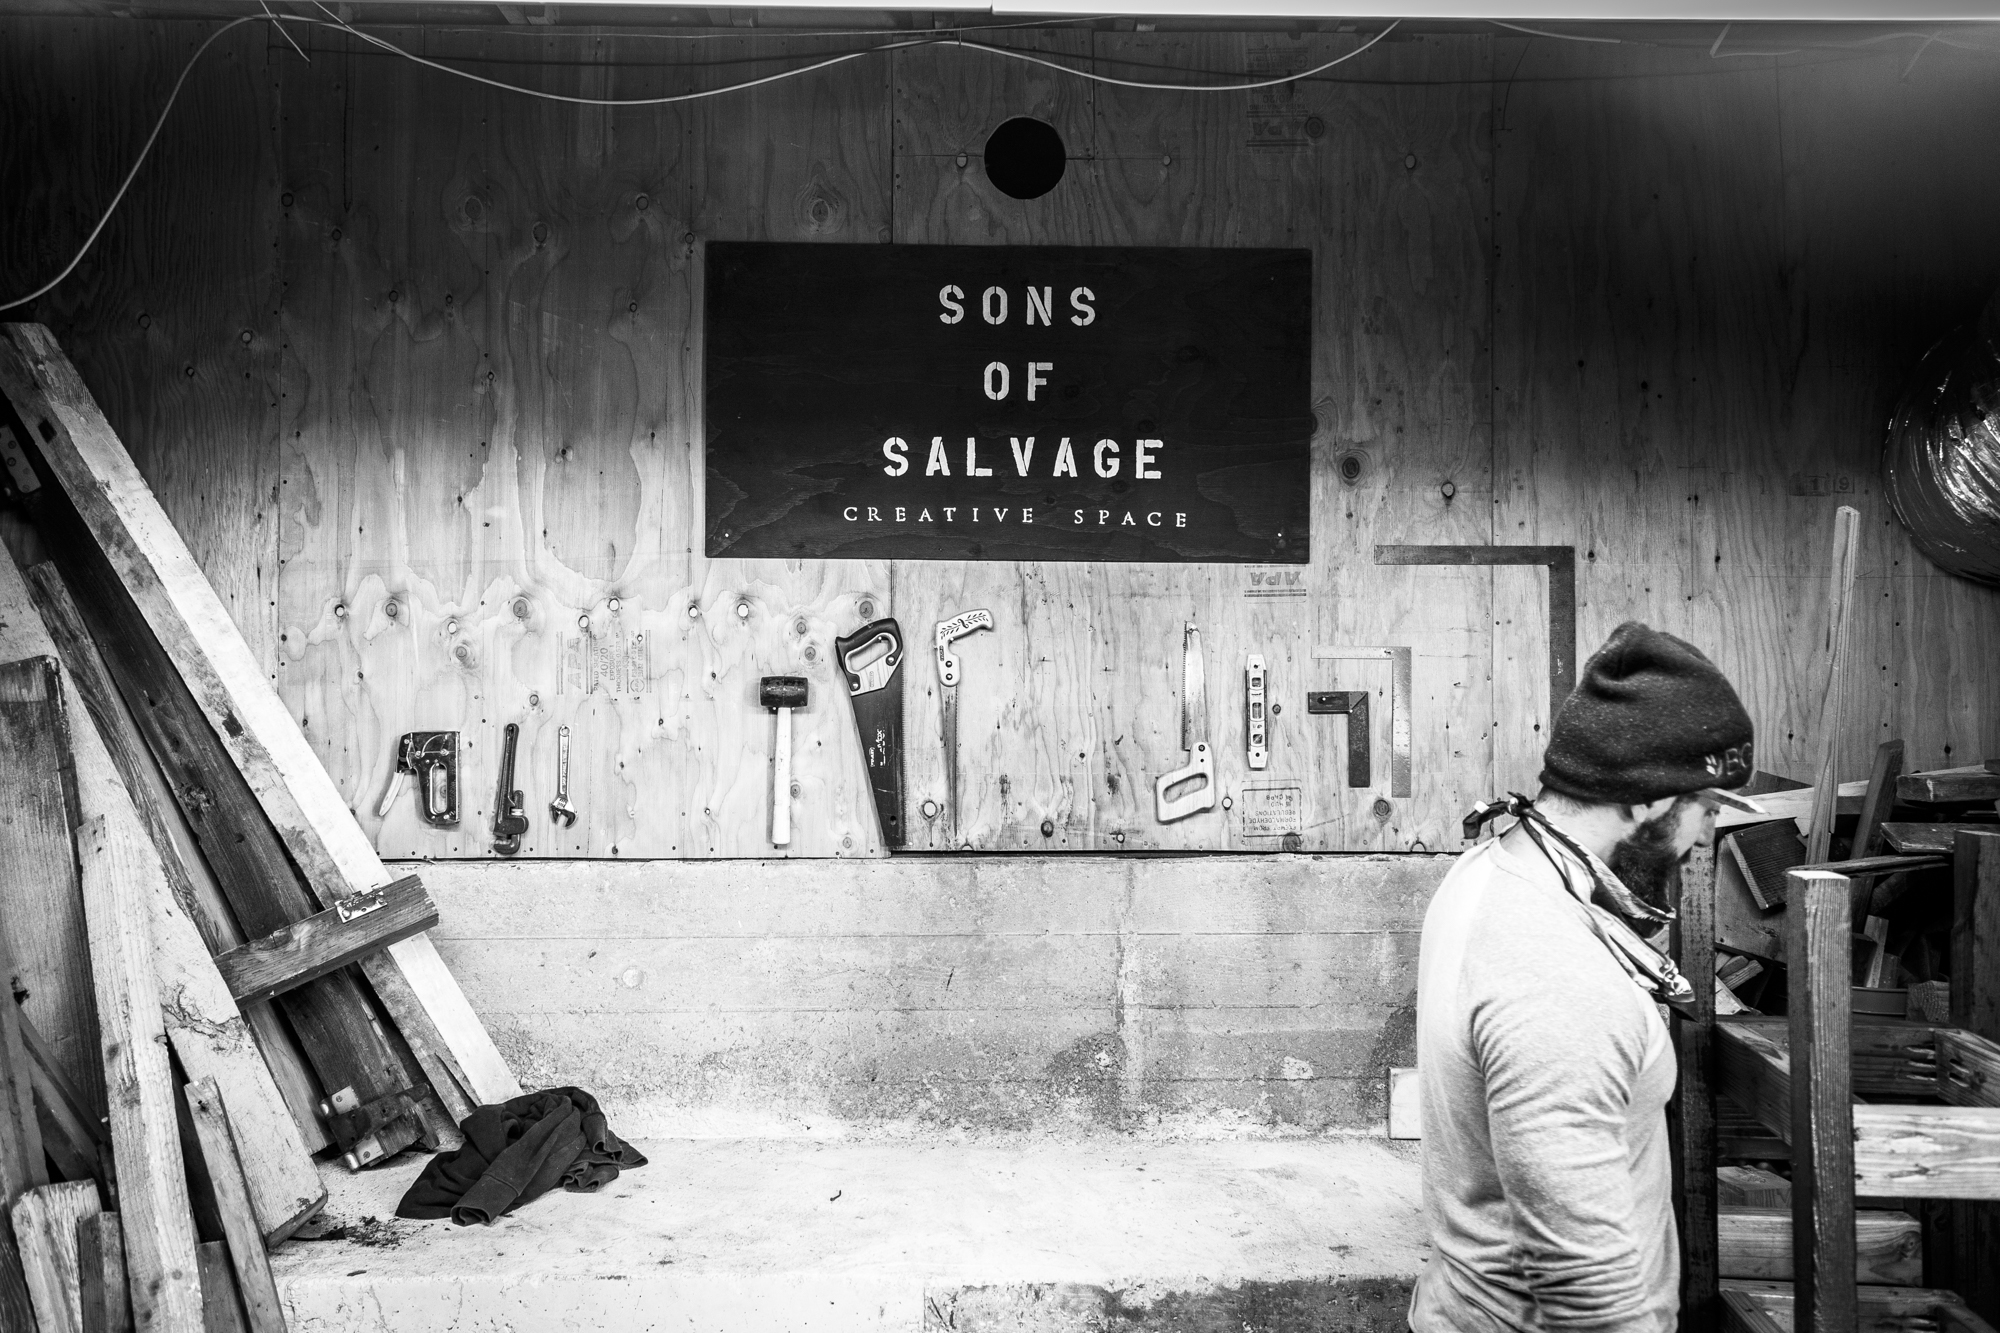 Sons Of Salvage